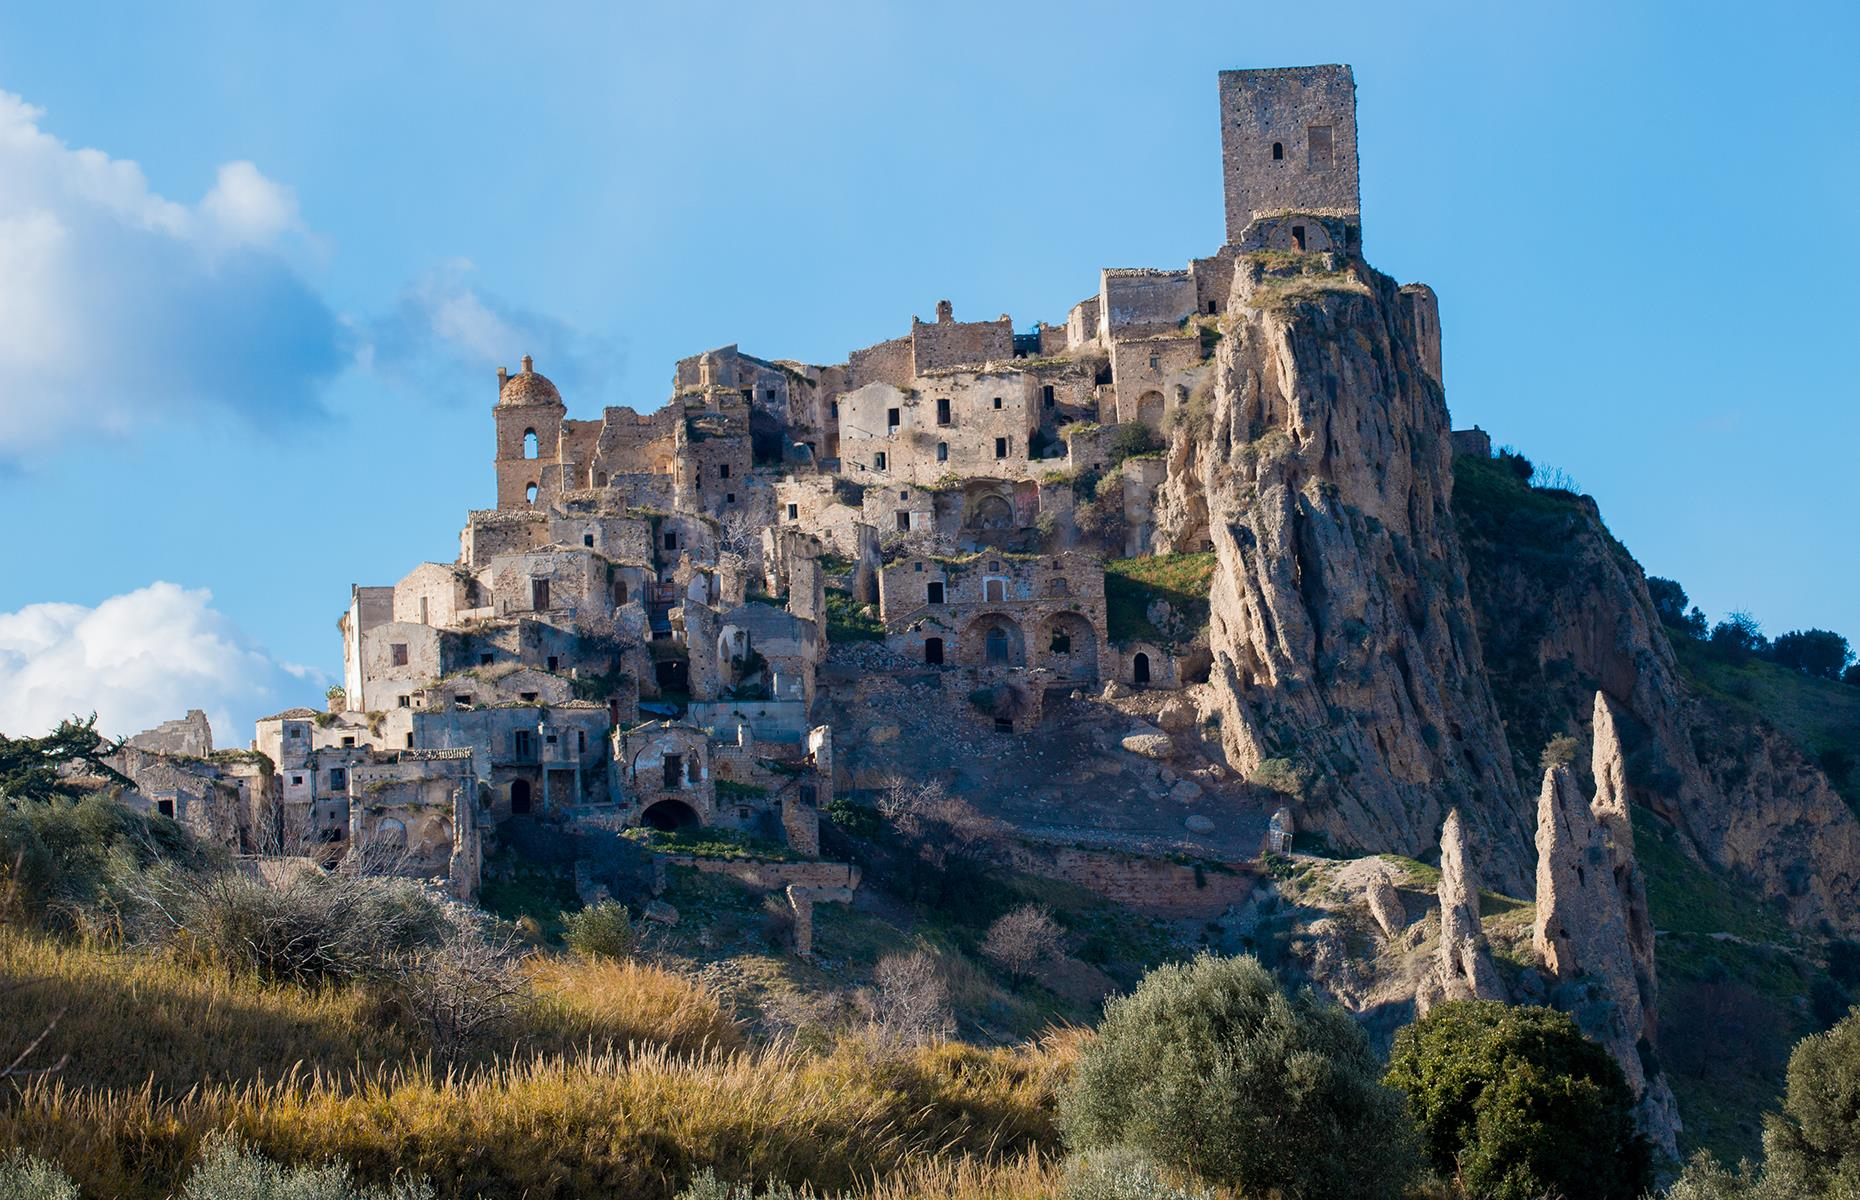 Slide 67 of 68: With a history stretching as far back as BC 540, Craco sits atop a 1,300-foot-high (396m) cliff overlooking the Cavone River valley, at the instep of Italy's boot. After the town was evacuated due to a landslide in 1963, many residents decided not to return. A flood in 1972 worsened the situation and after an earthquake in 1980, the ancient site was abandoned completely.